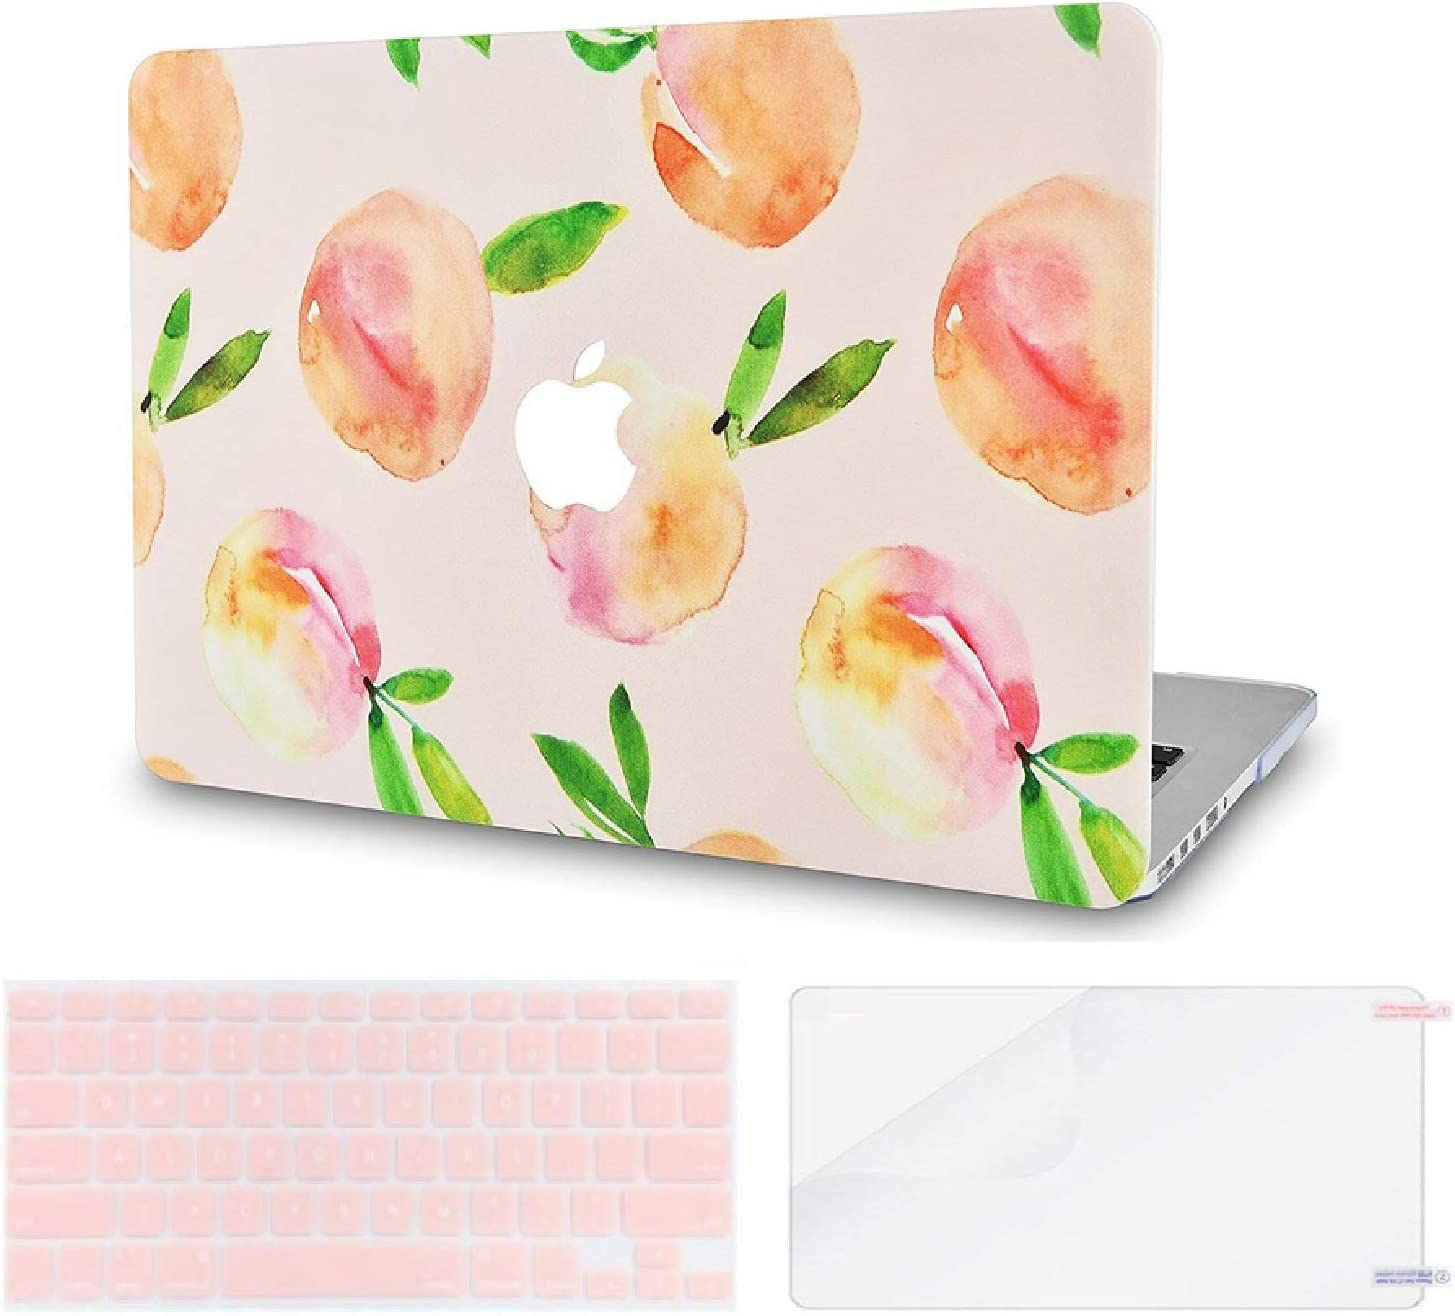 LuvCase 3 in 1 LaptopCase forMacBookPro 15 Touch Bar (2019/2018/2017/2016) A1990/A1707 HardShellCover, Keyboard Cover & Screen Protector(Orange)